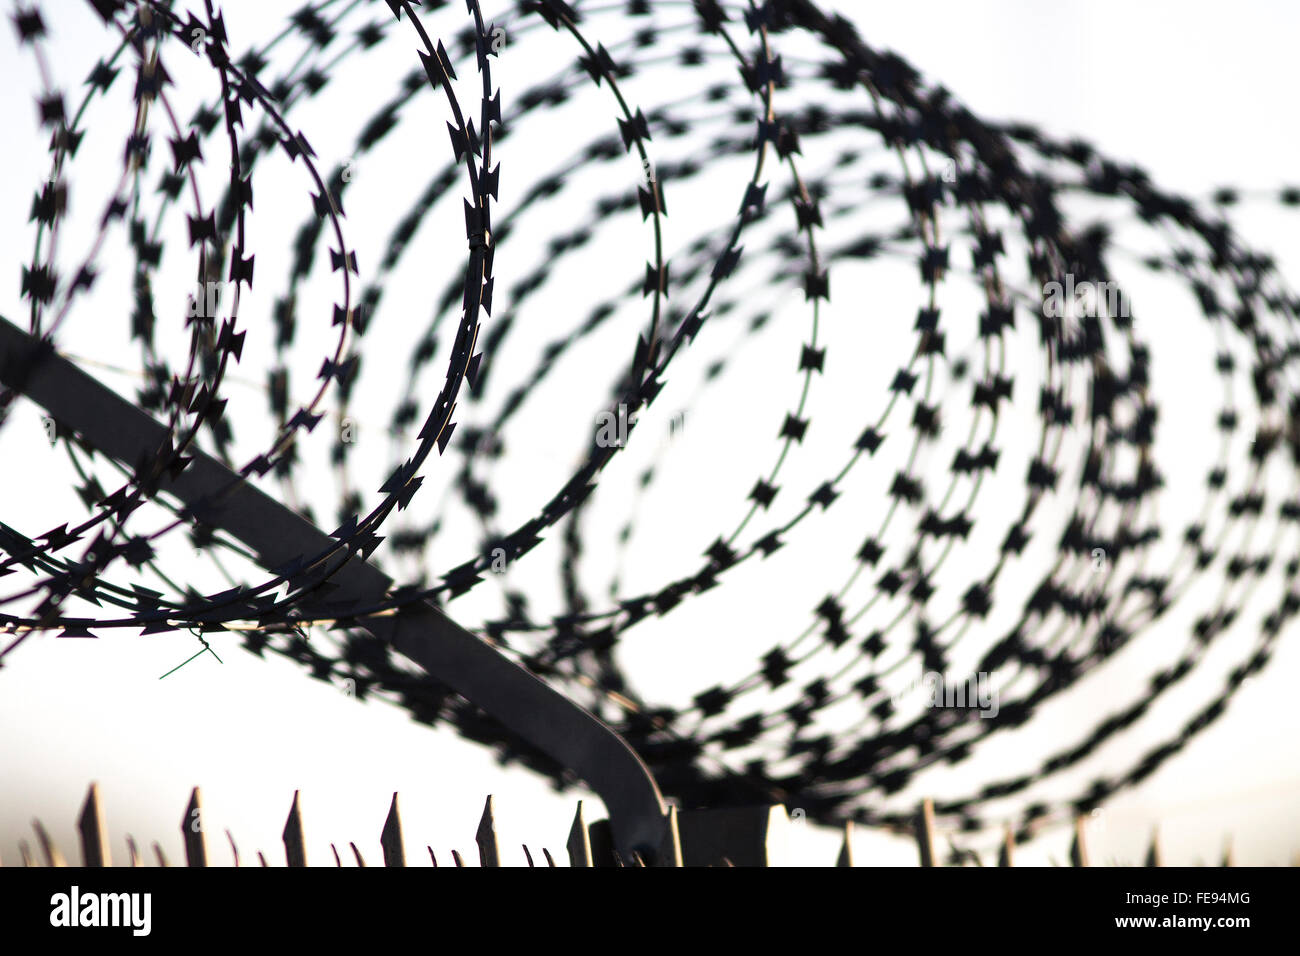 Wire Fence Stock Photos & Wire Fence Stock Images - Alamy